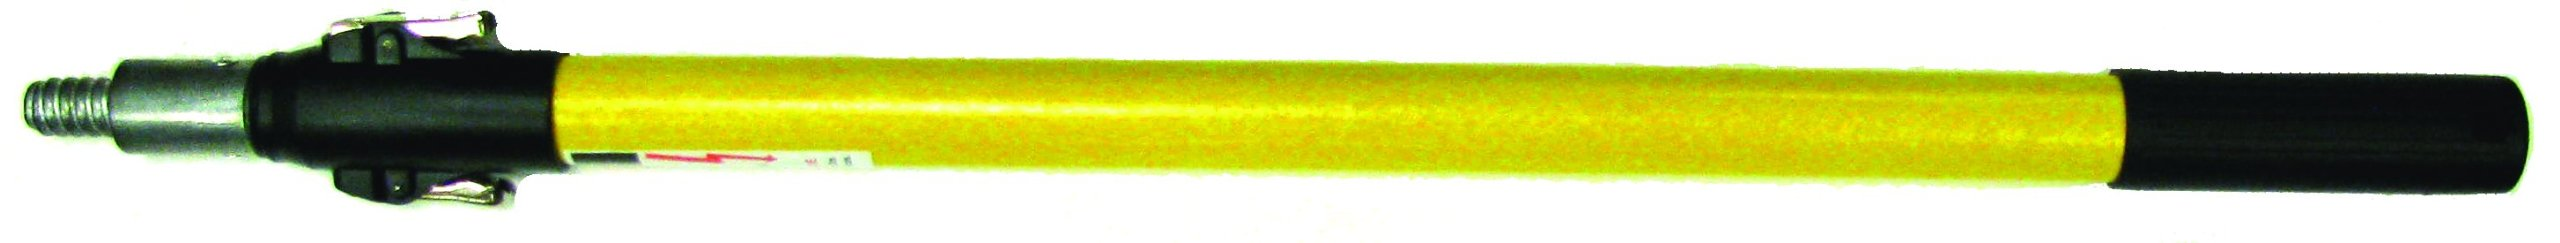 Magnolia Brush Super-Loc 48 Super-Loc Fiberglass Handle with Aluminum Slider Tube, 4' - 8' Length (Case of 6)